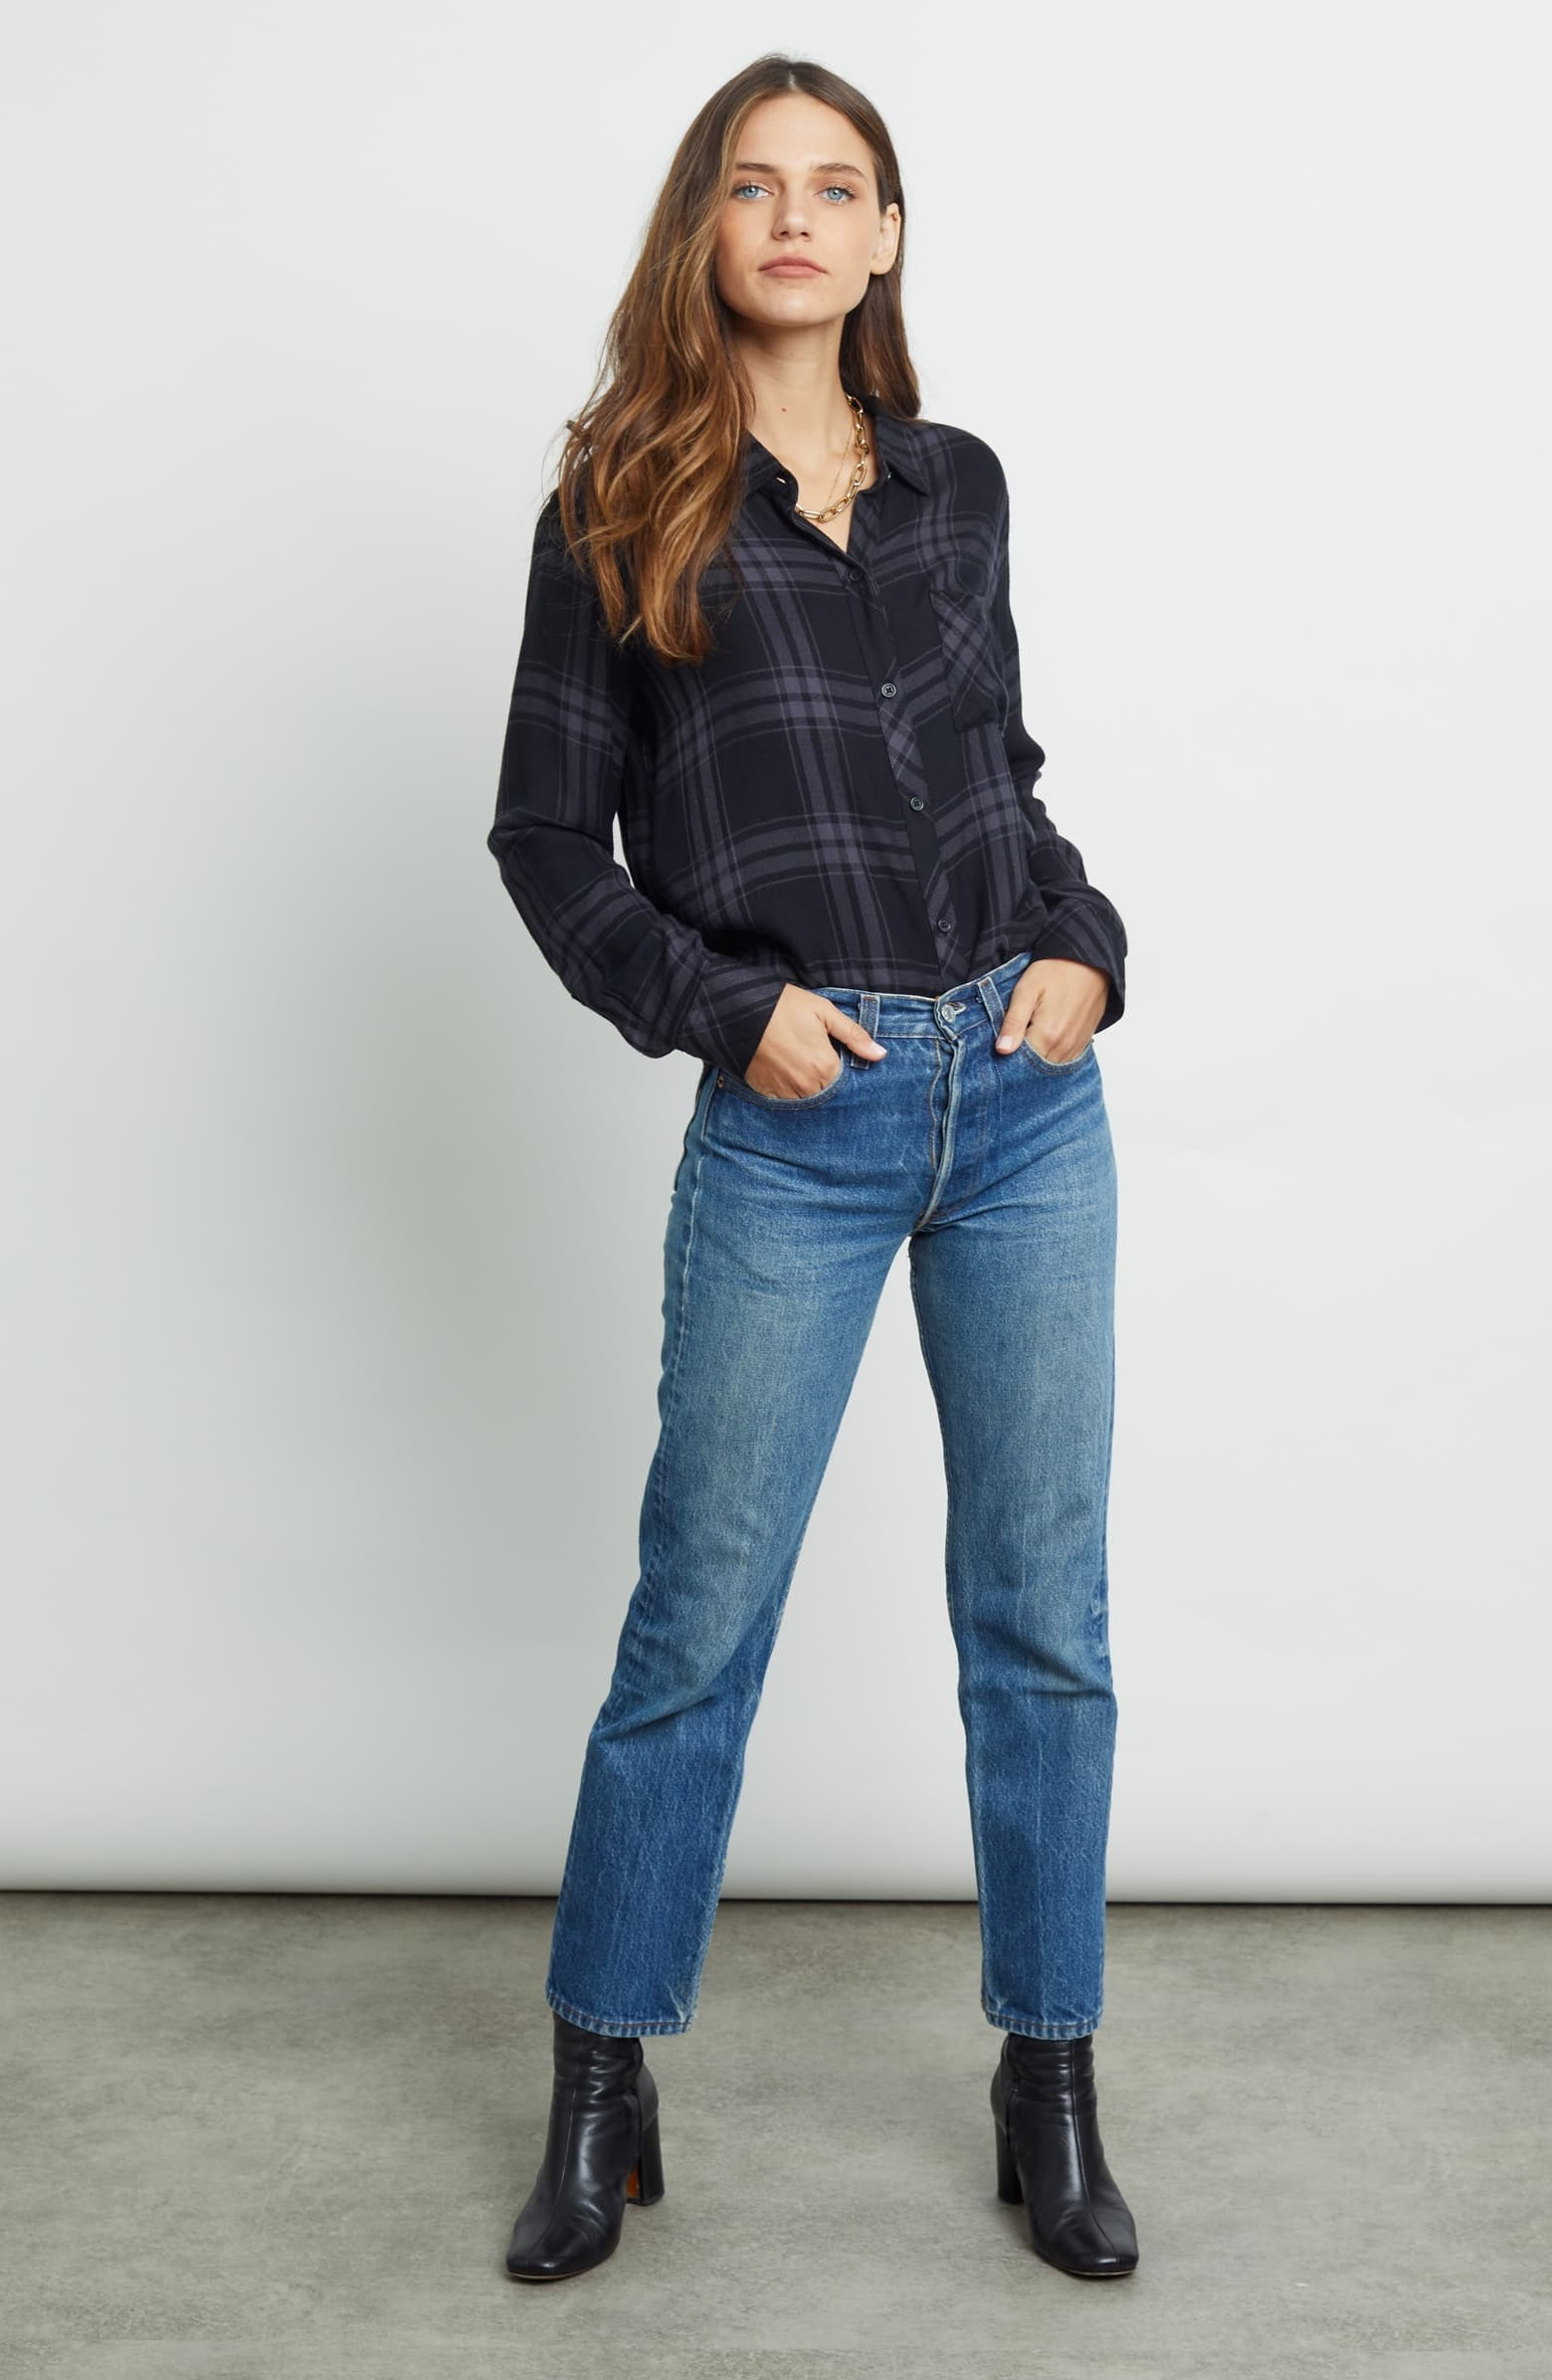 a model in a smoky blue flannel